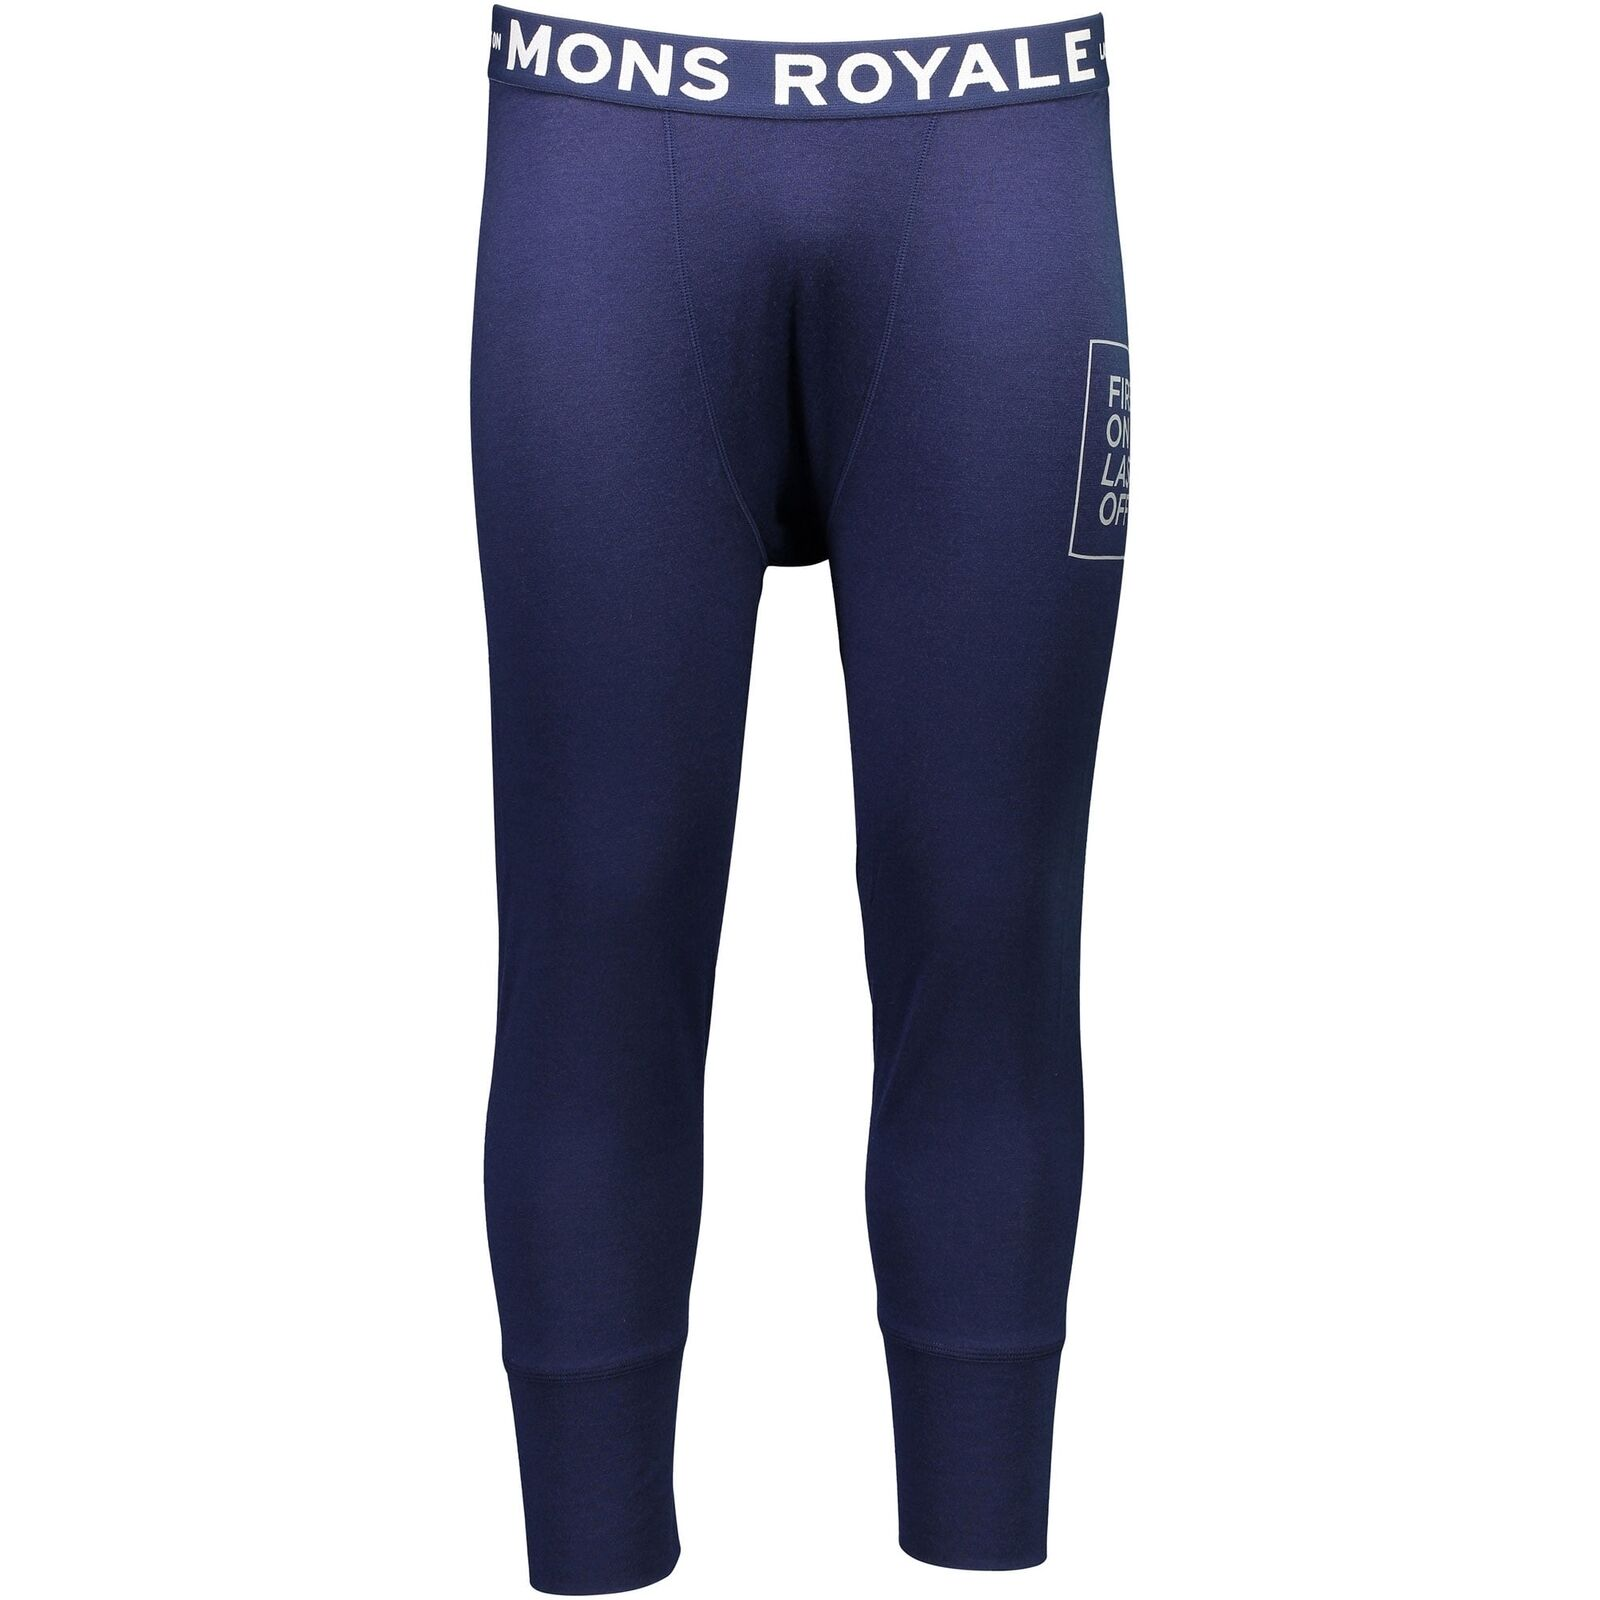 Mons Royale FOLO Shaun-Off 3/4 Long Johns FOLO Royale - Navy 2fe936